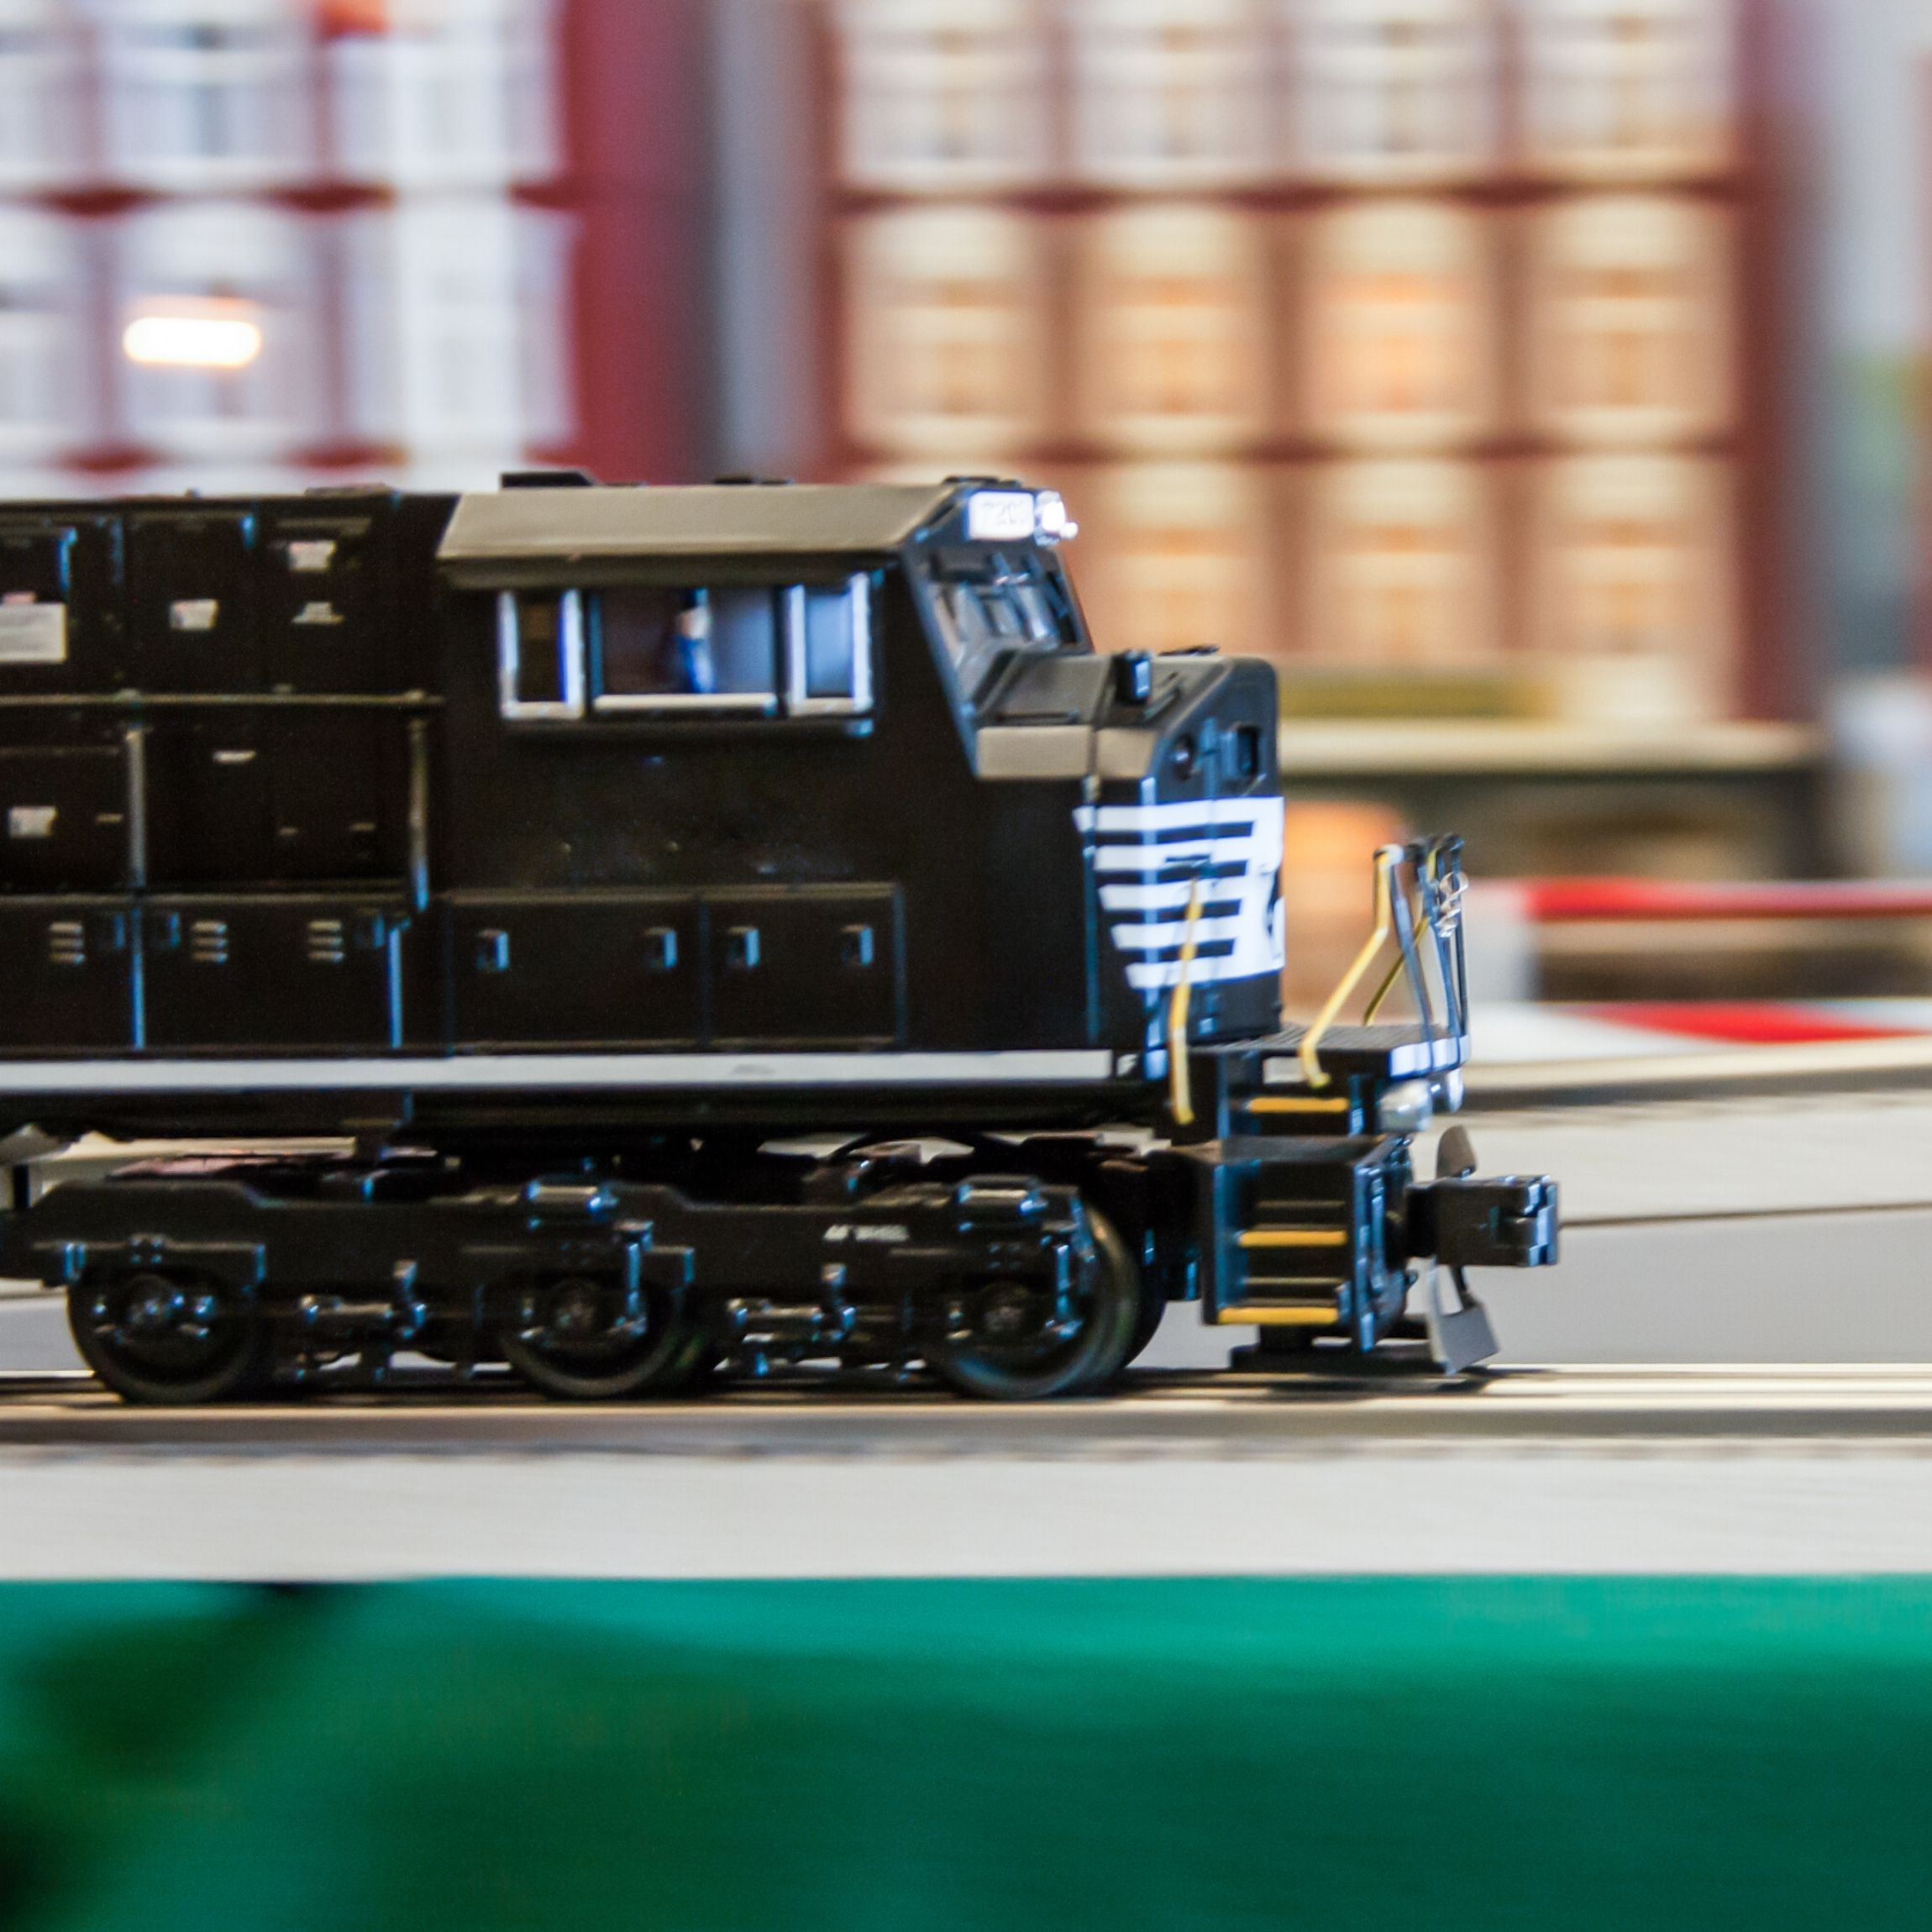 How to find valuable model trains in the most unlikely of